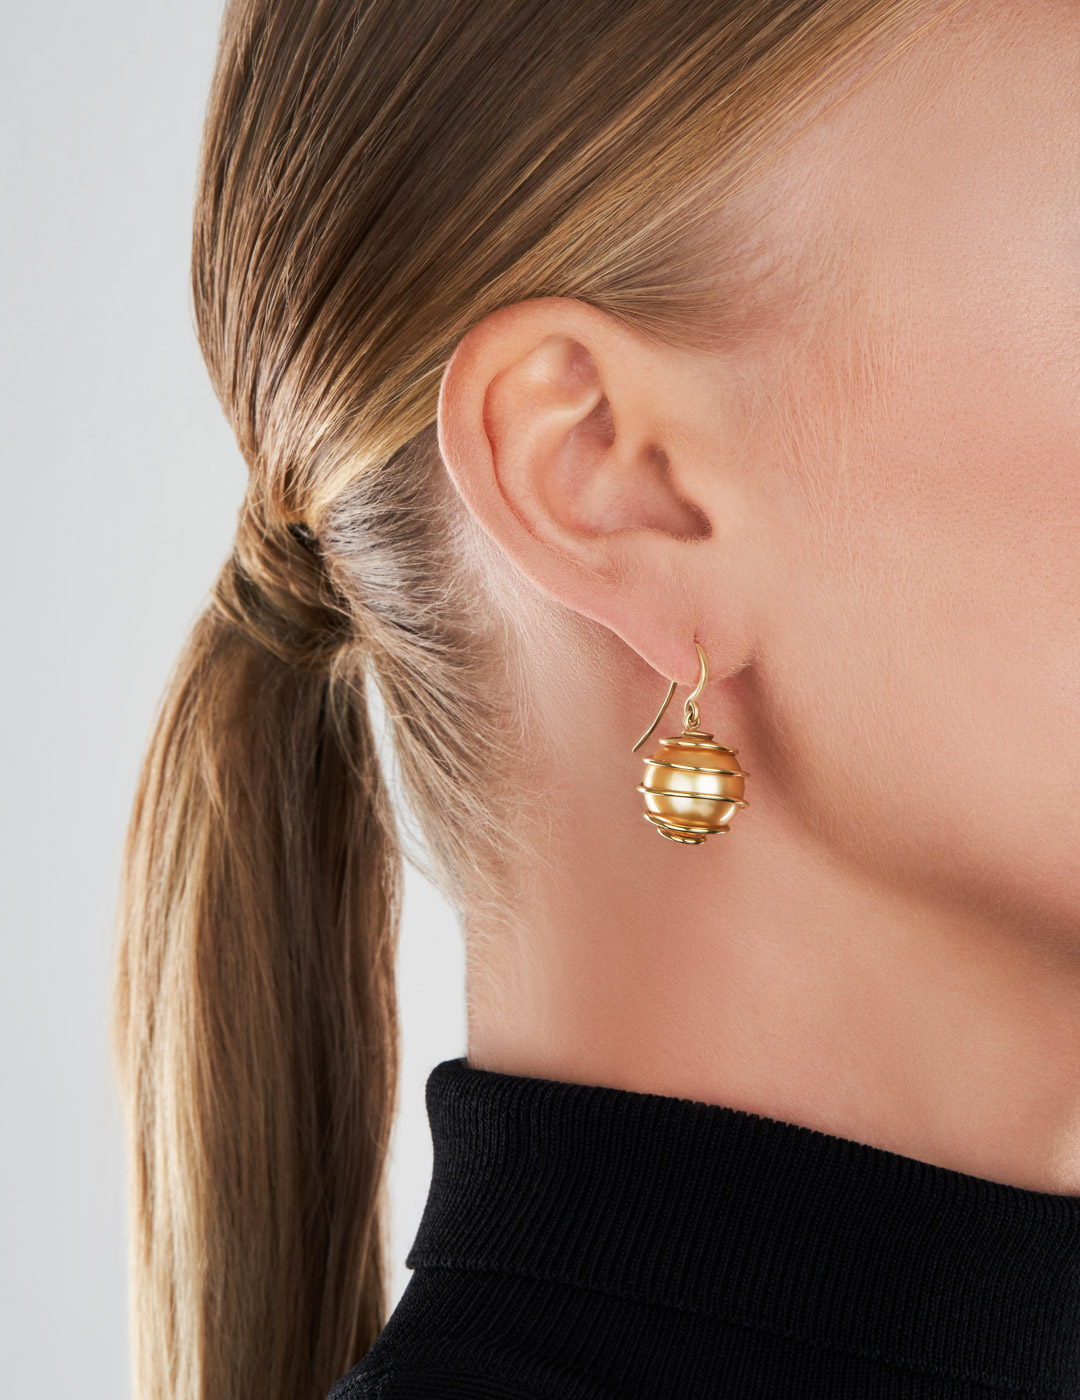 mish_products_earrings_Orbiting-Prl-Golden SS-ER-2